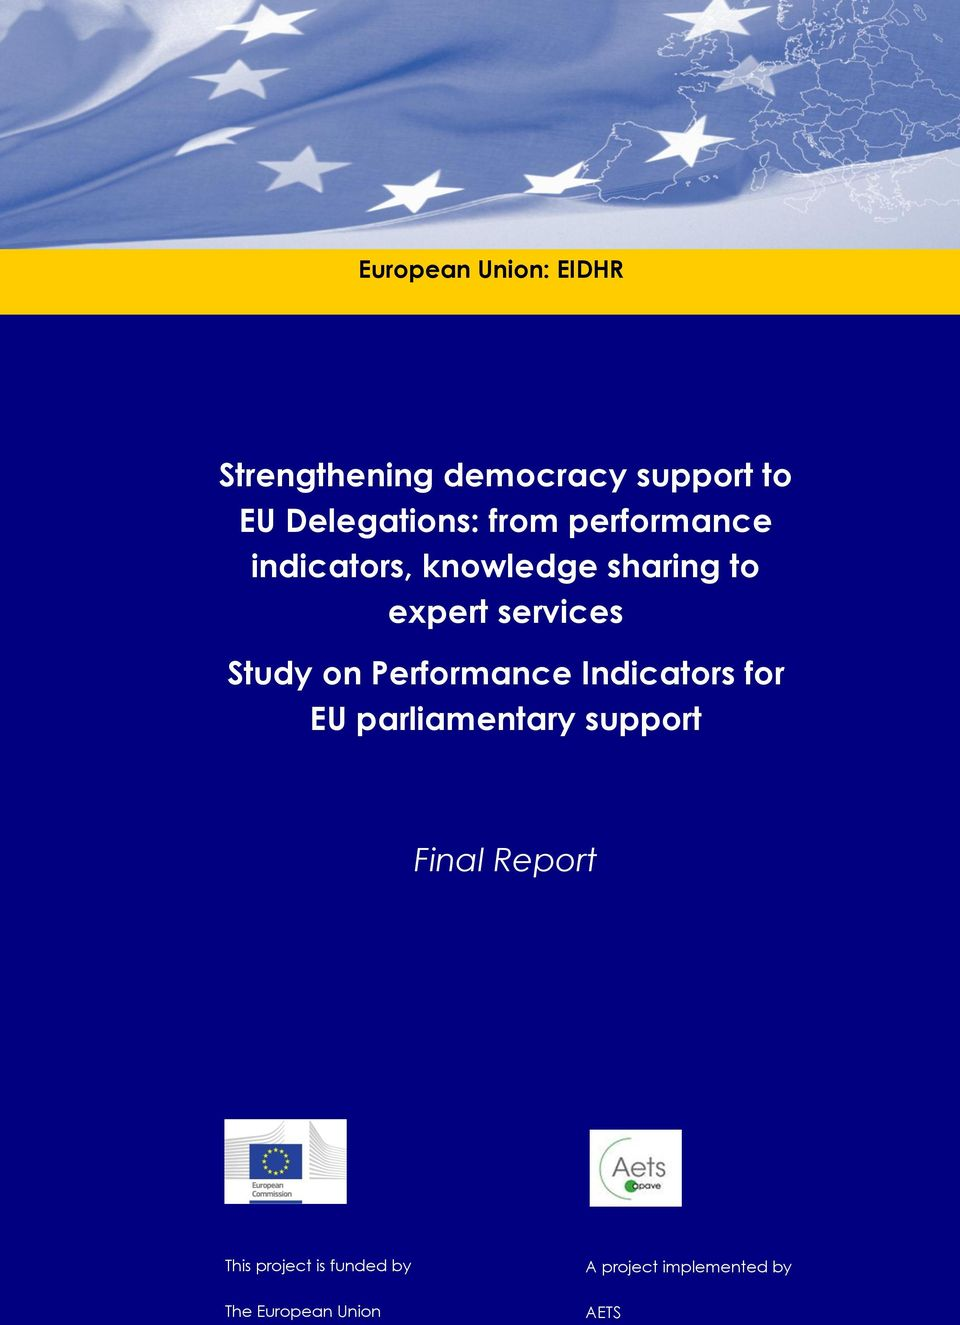 on Performance Indicators for EU support Final Report <Final version>